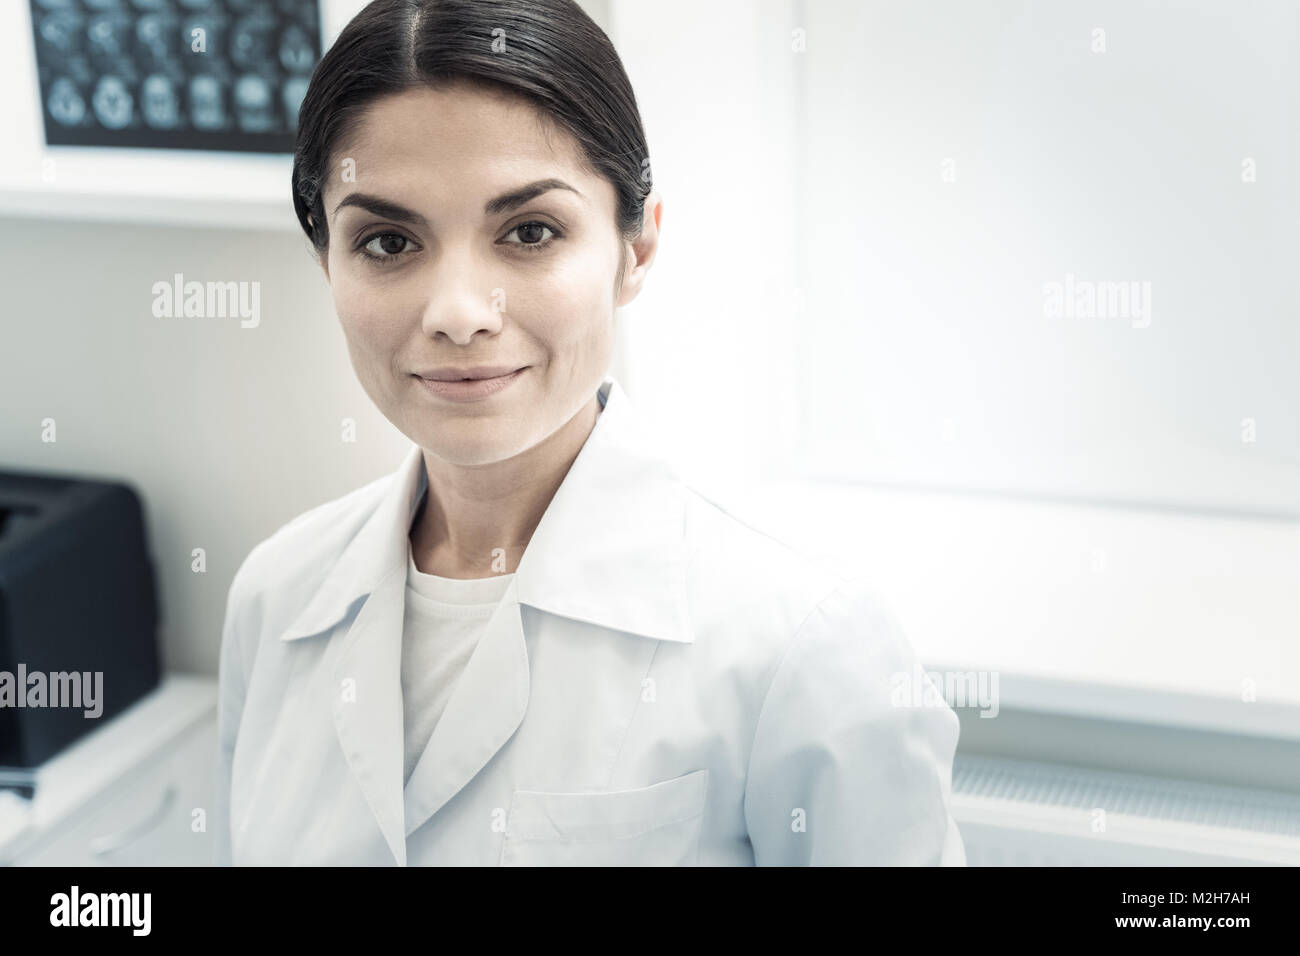 Portrait of a professional skillful doctor - Stock Image